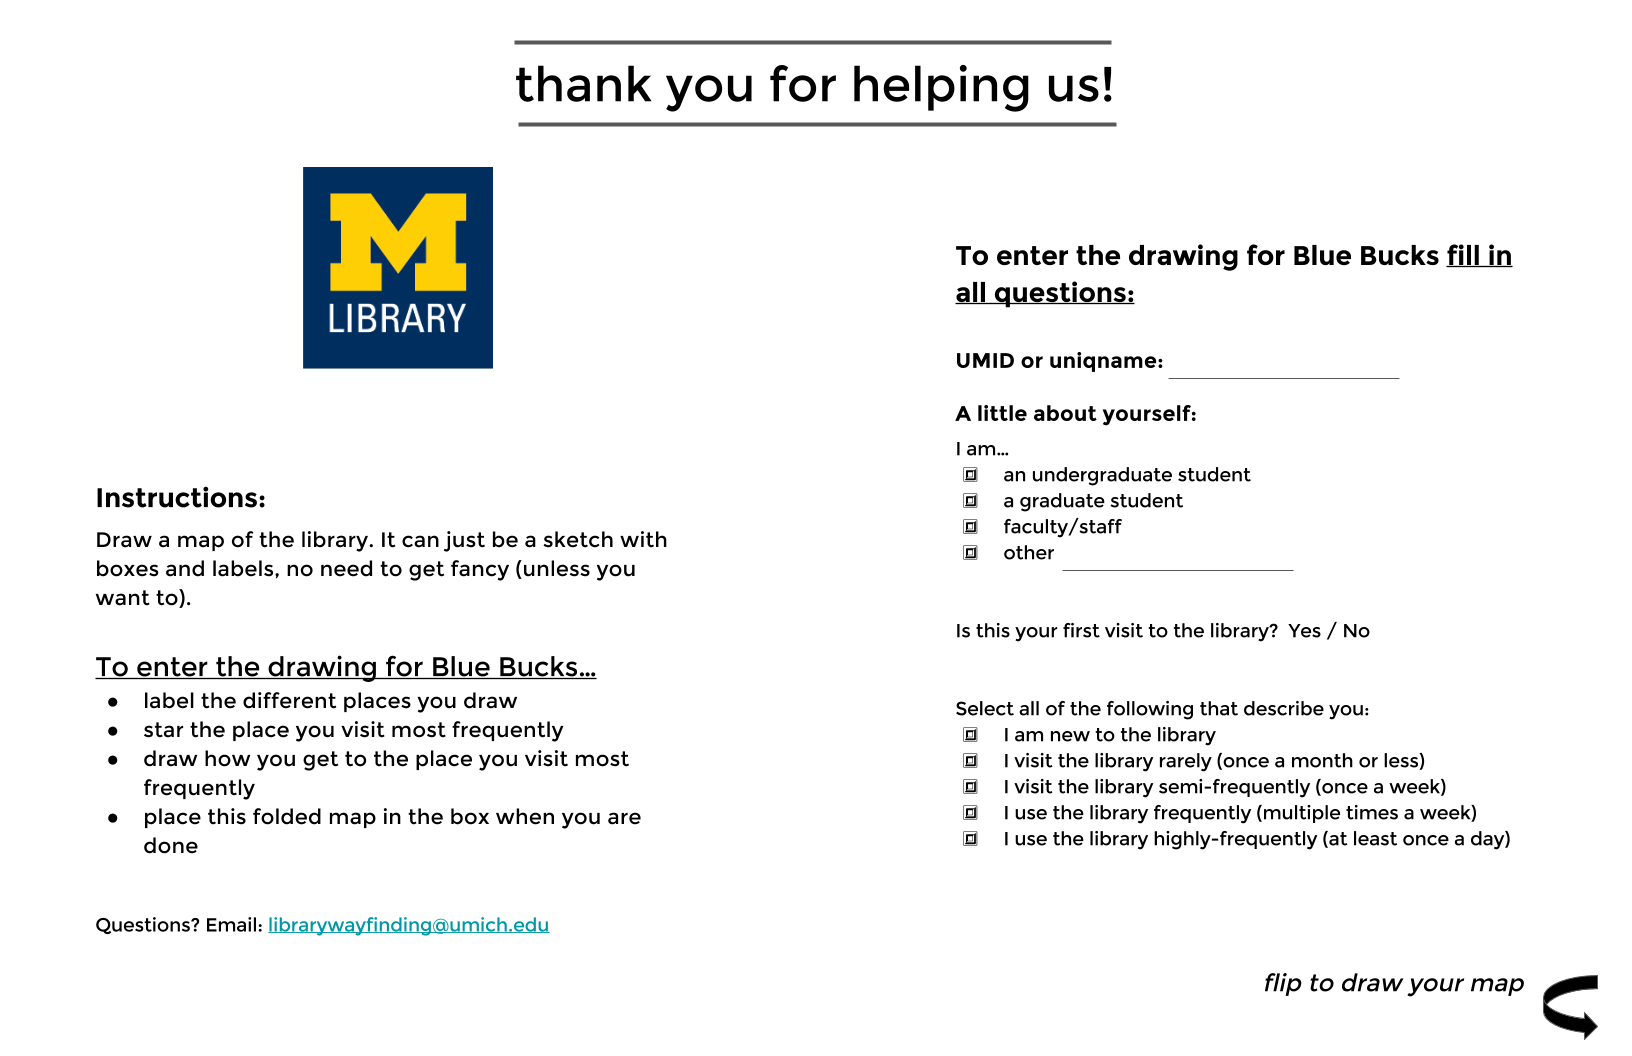 Reverse side of the blank cognitive map with the demographic survey and instructions to get campus dollars for the participant.